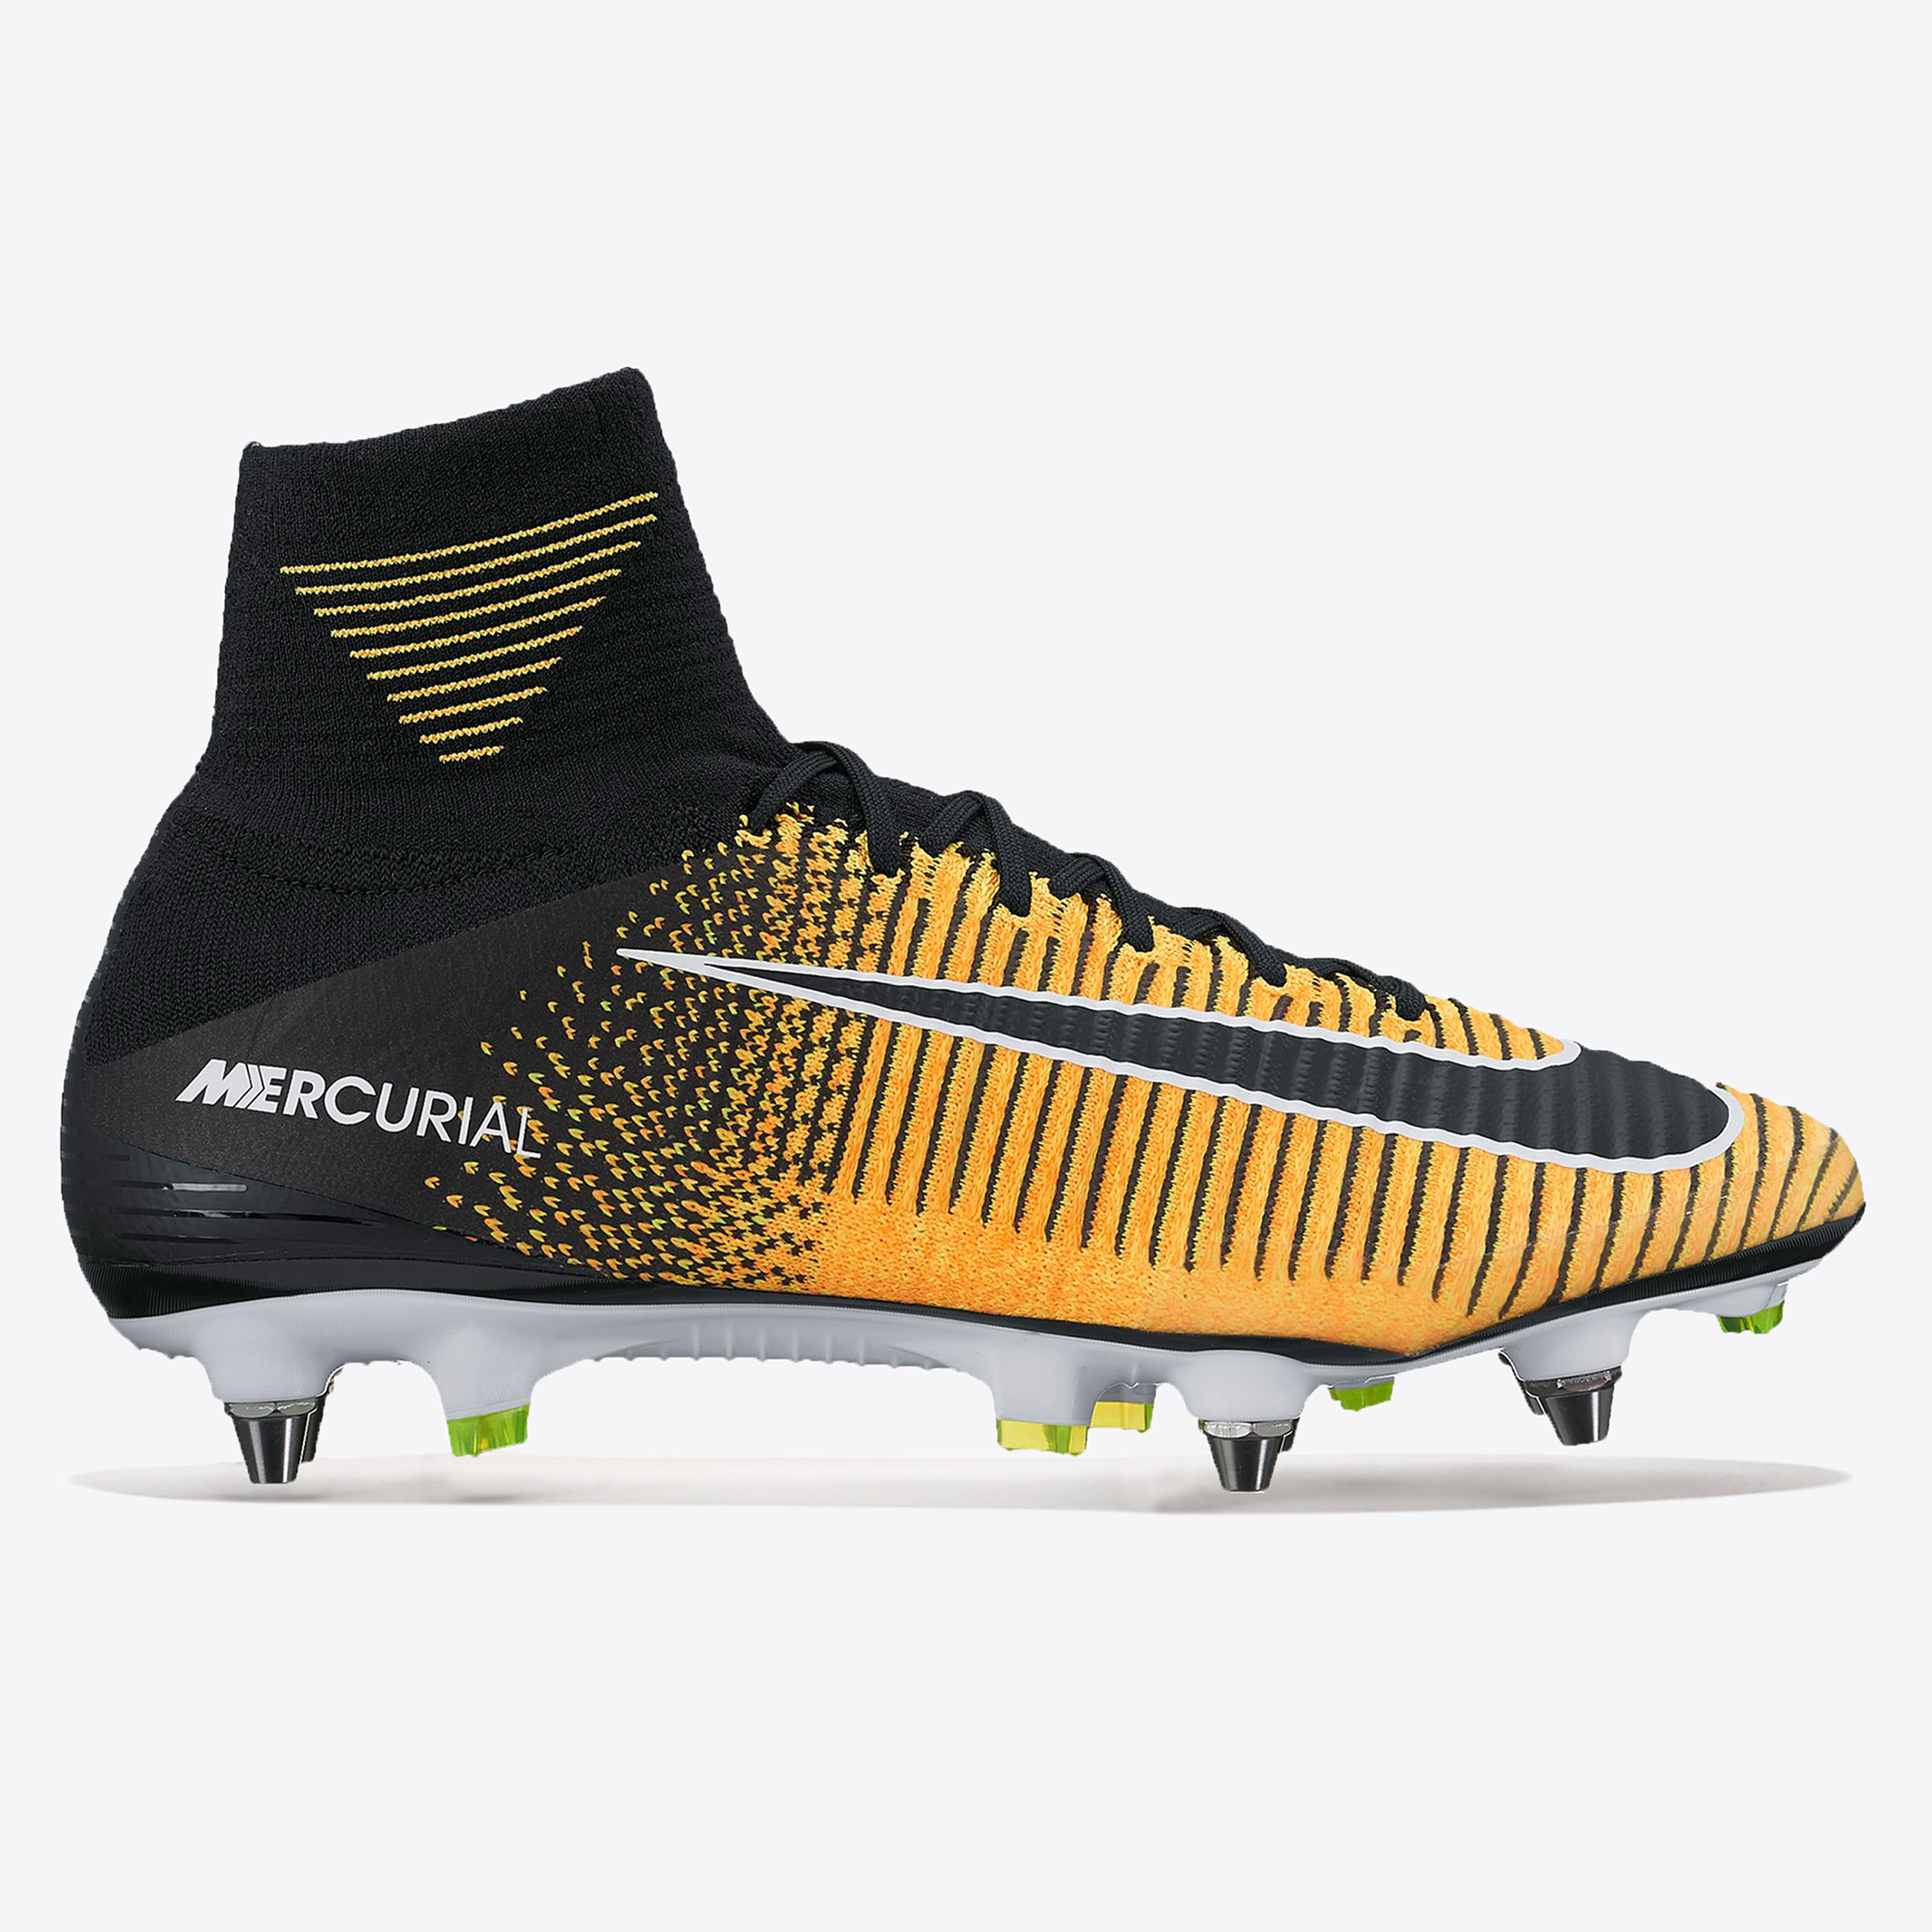 Nike Mercurial Superfly V Soft Ground Football Boots - Laser Orange/Bl